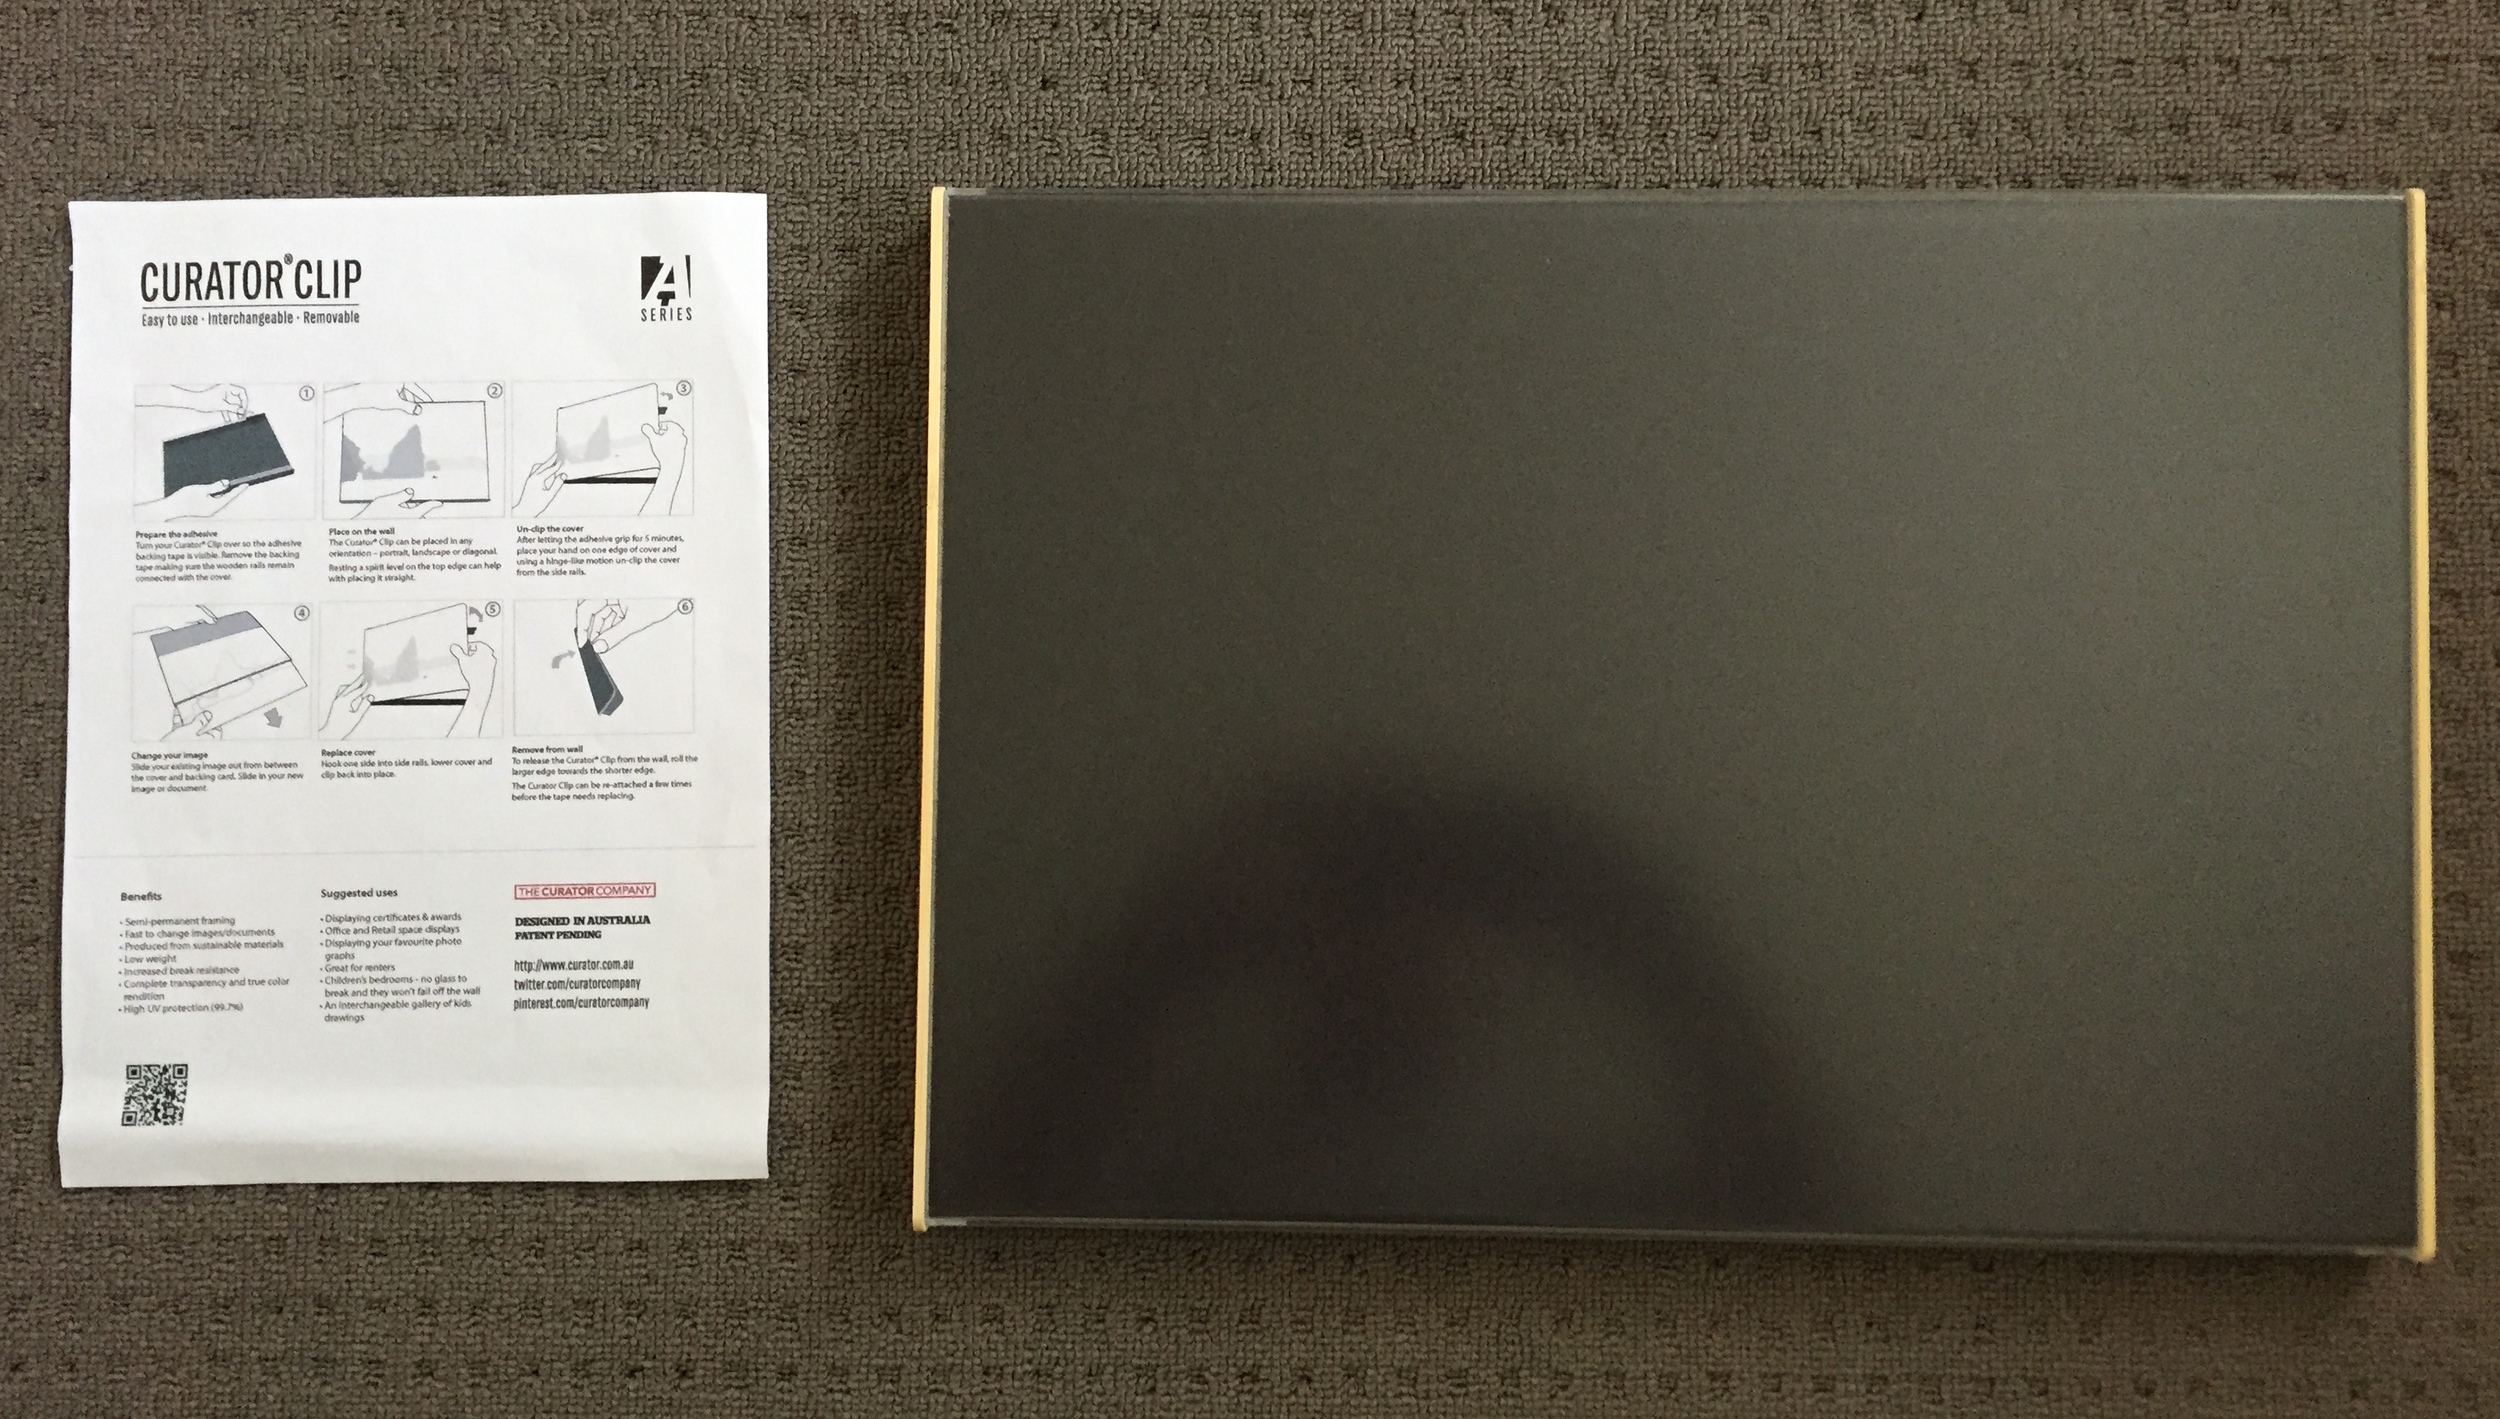 What you get in the packaging, your Curator Clip and a handy instruction guide.